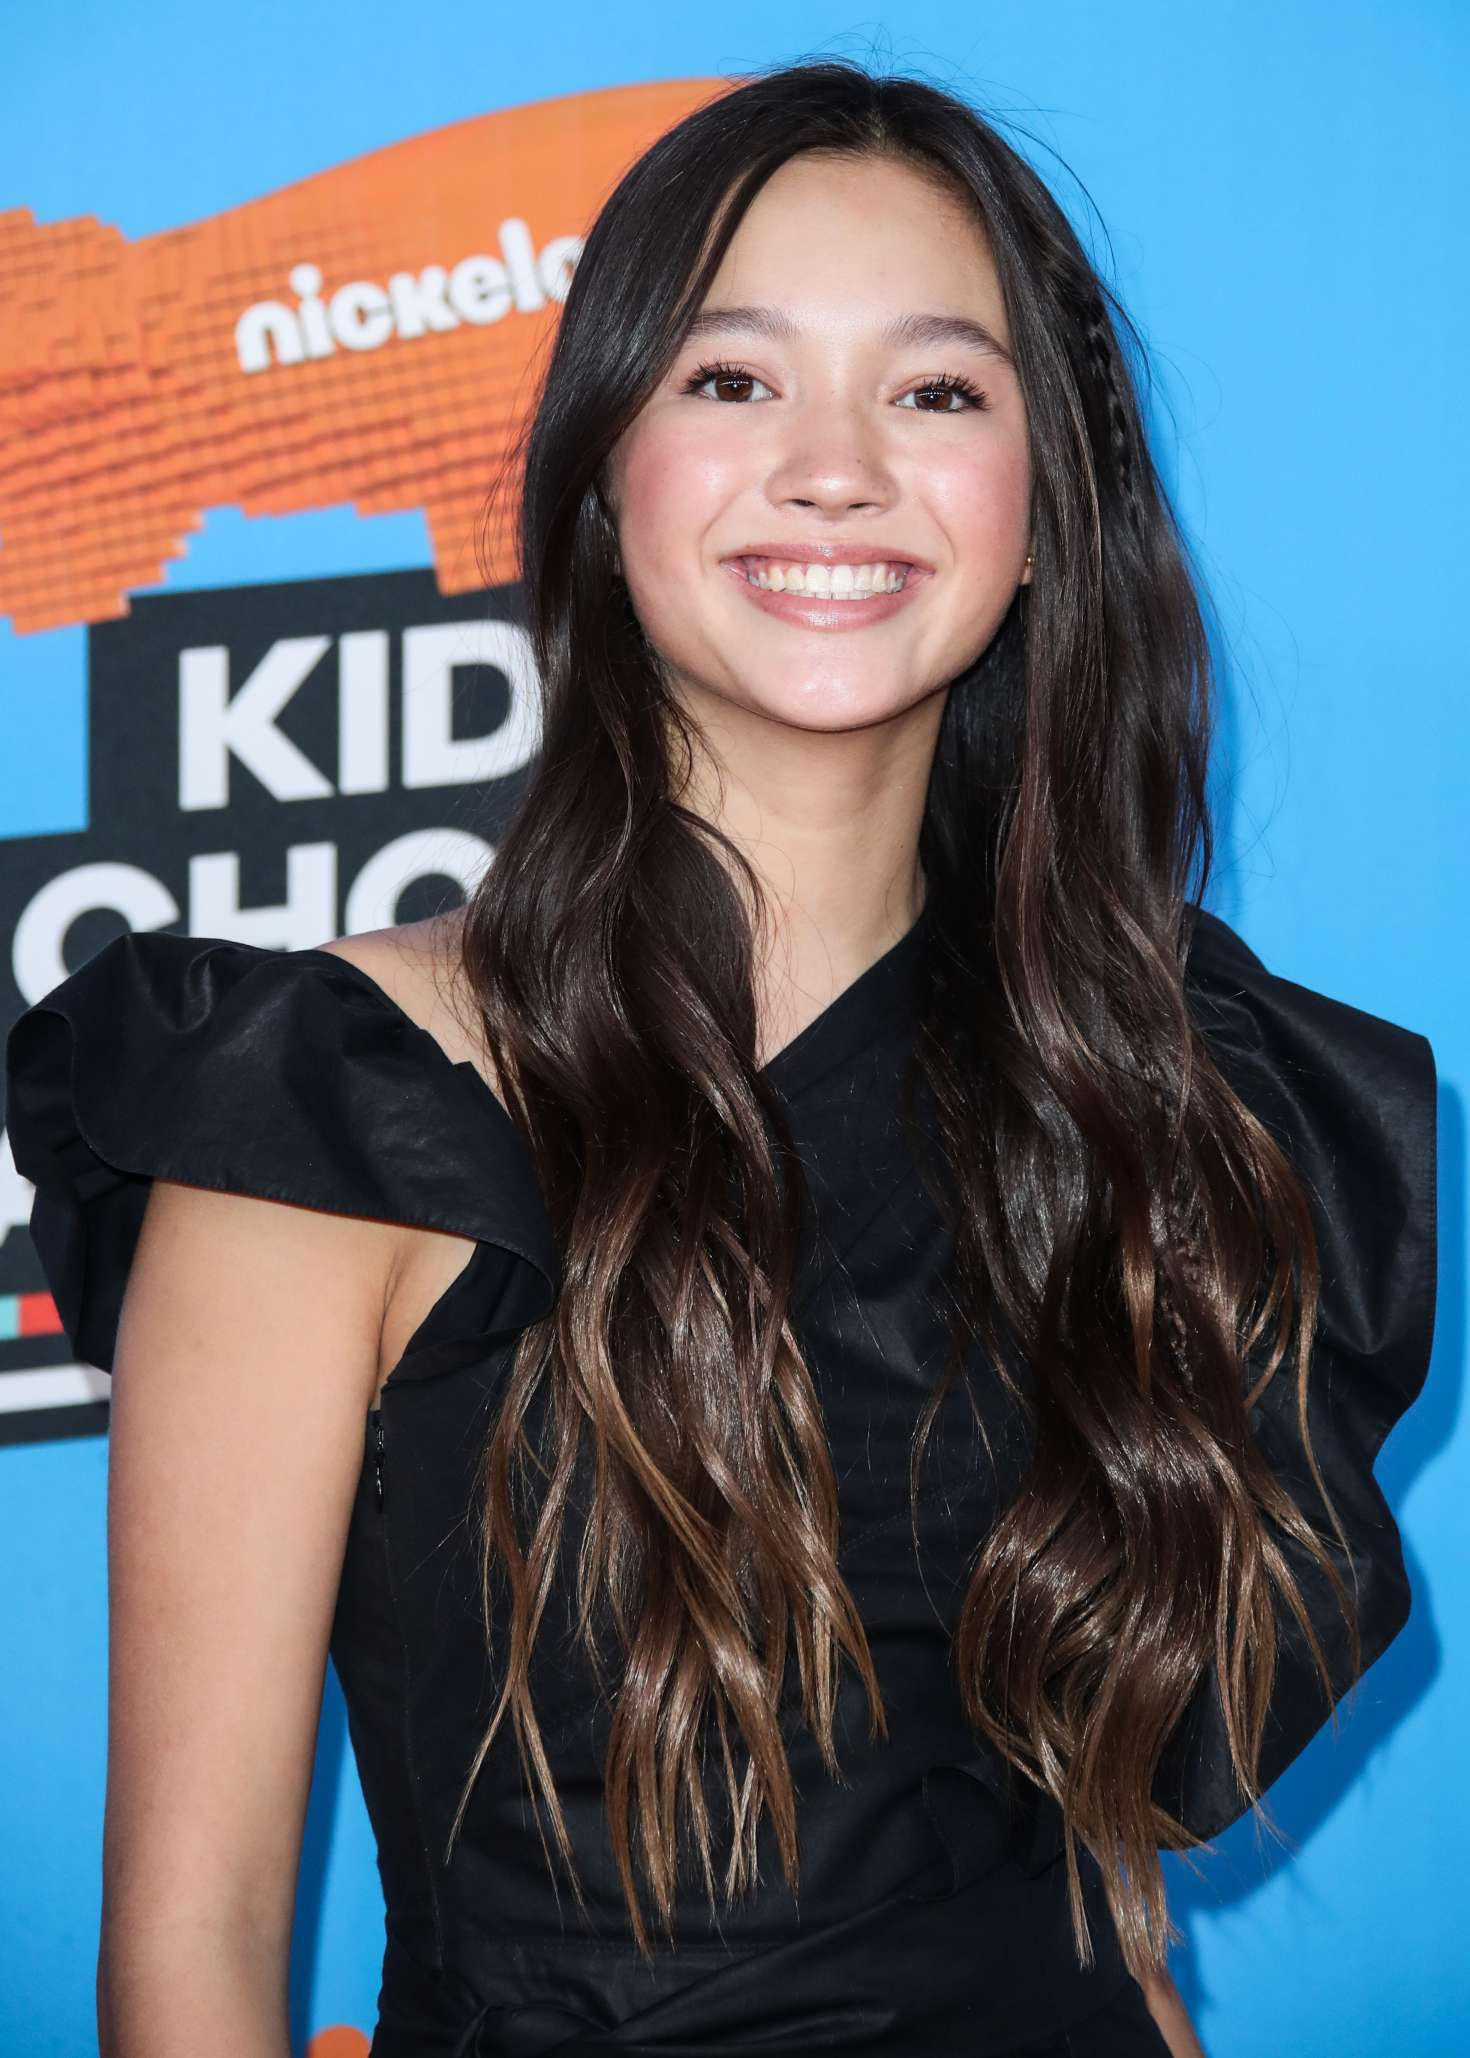 Lily Chee - 2018 Nickelodeon Kids' Choice Awards in Los Angeles